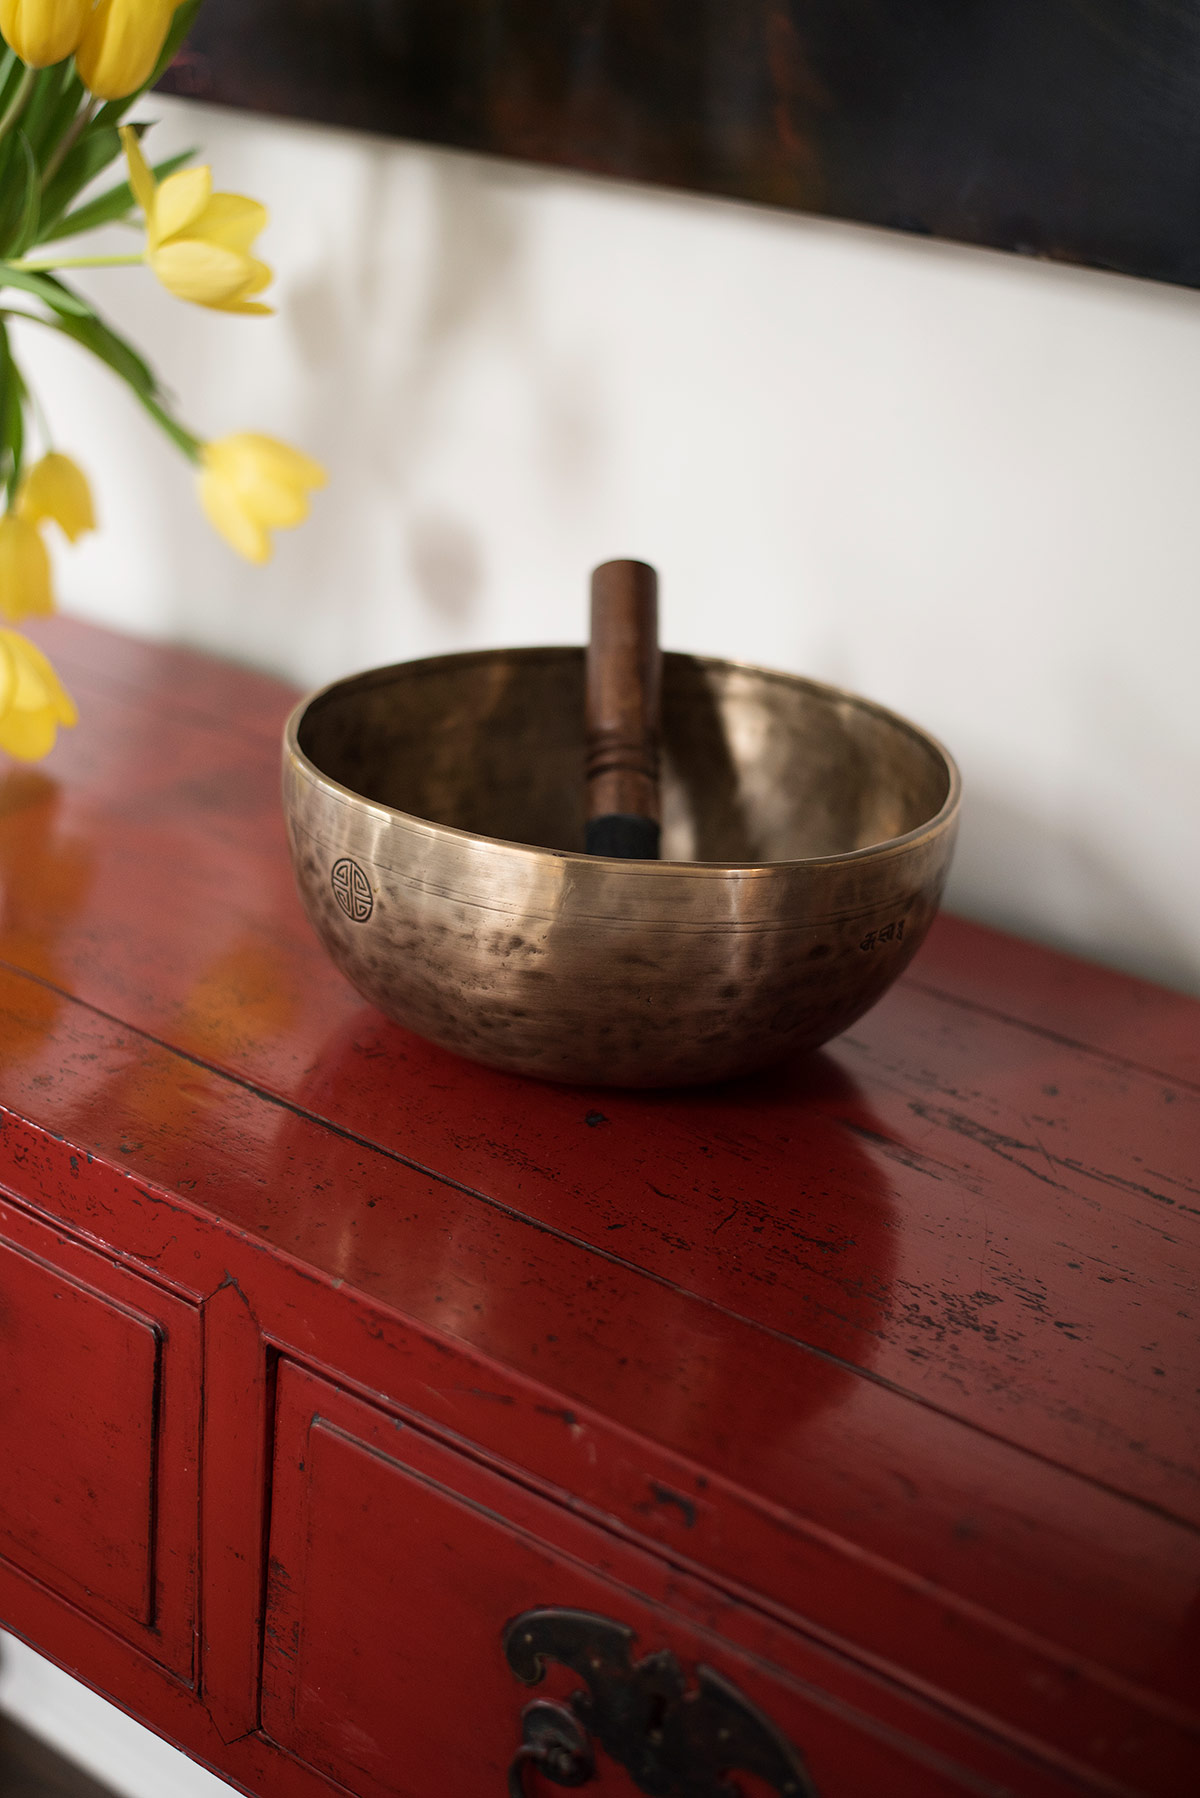 Antique red console table, with Tibetan singing bowl